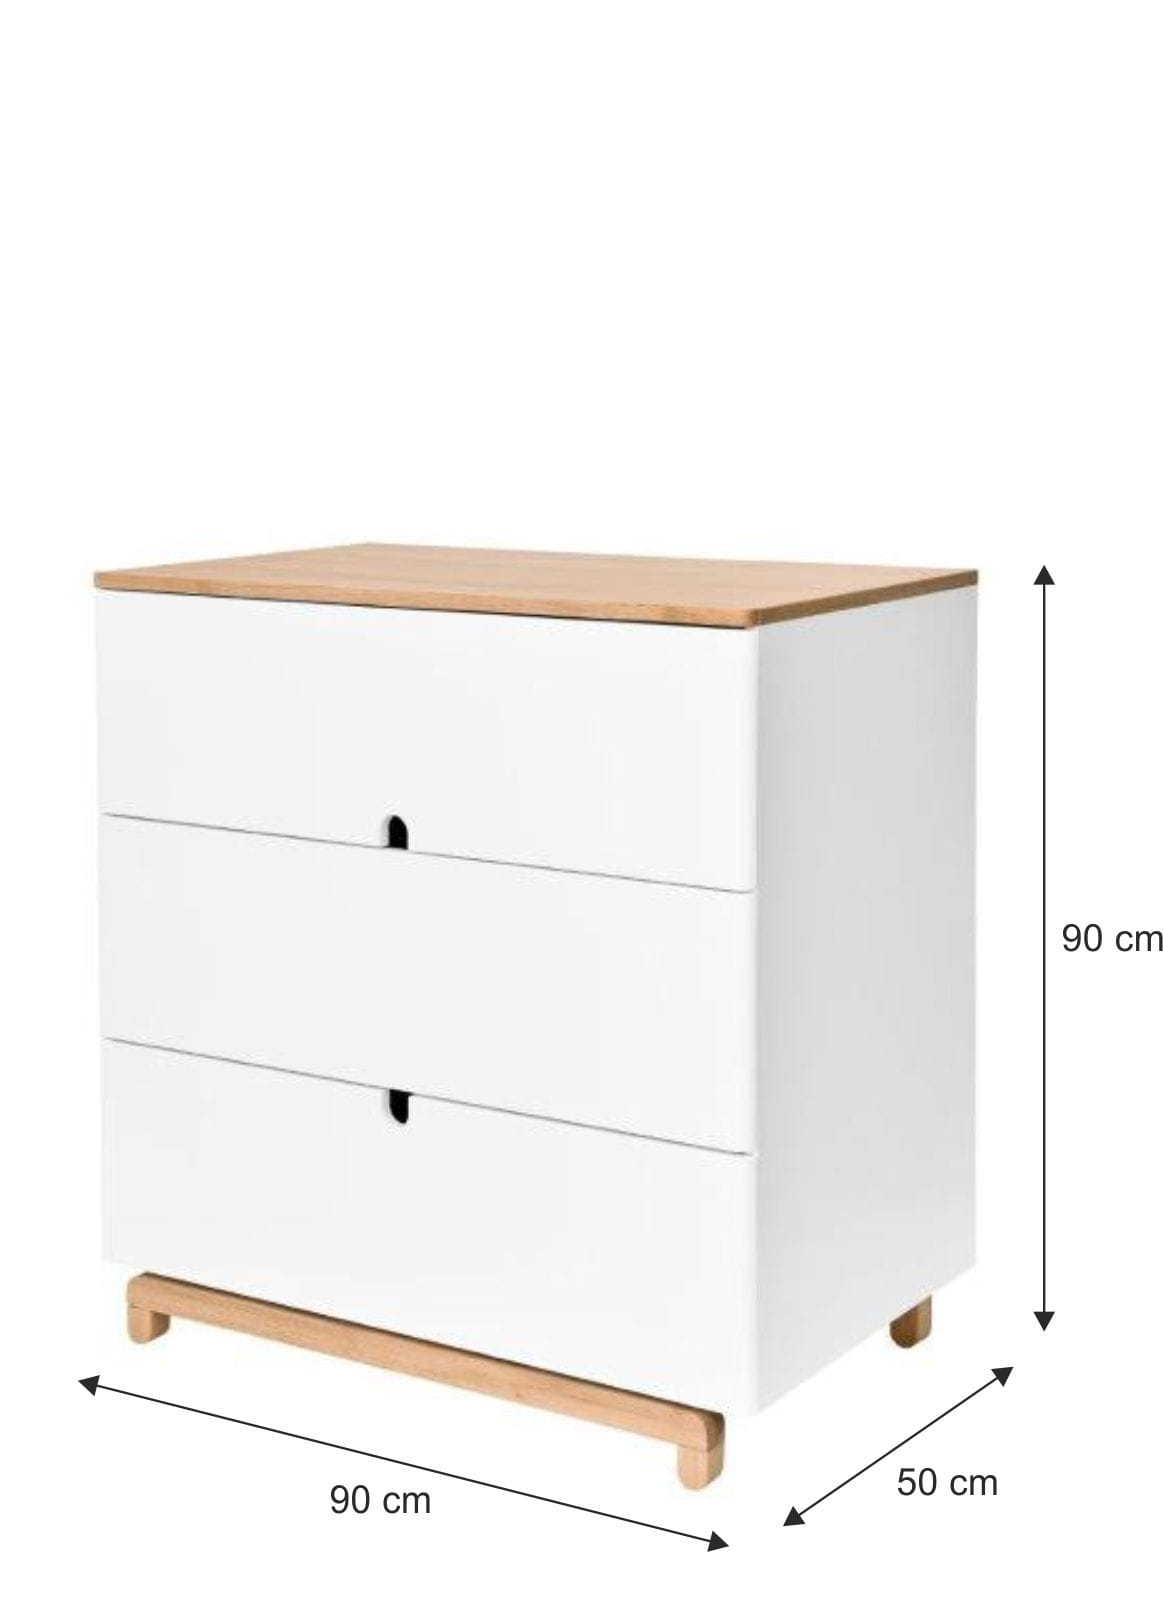 Nomi_chest_of_drawers_w.jpg